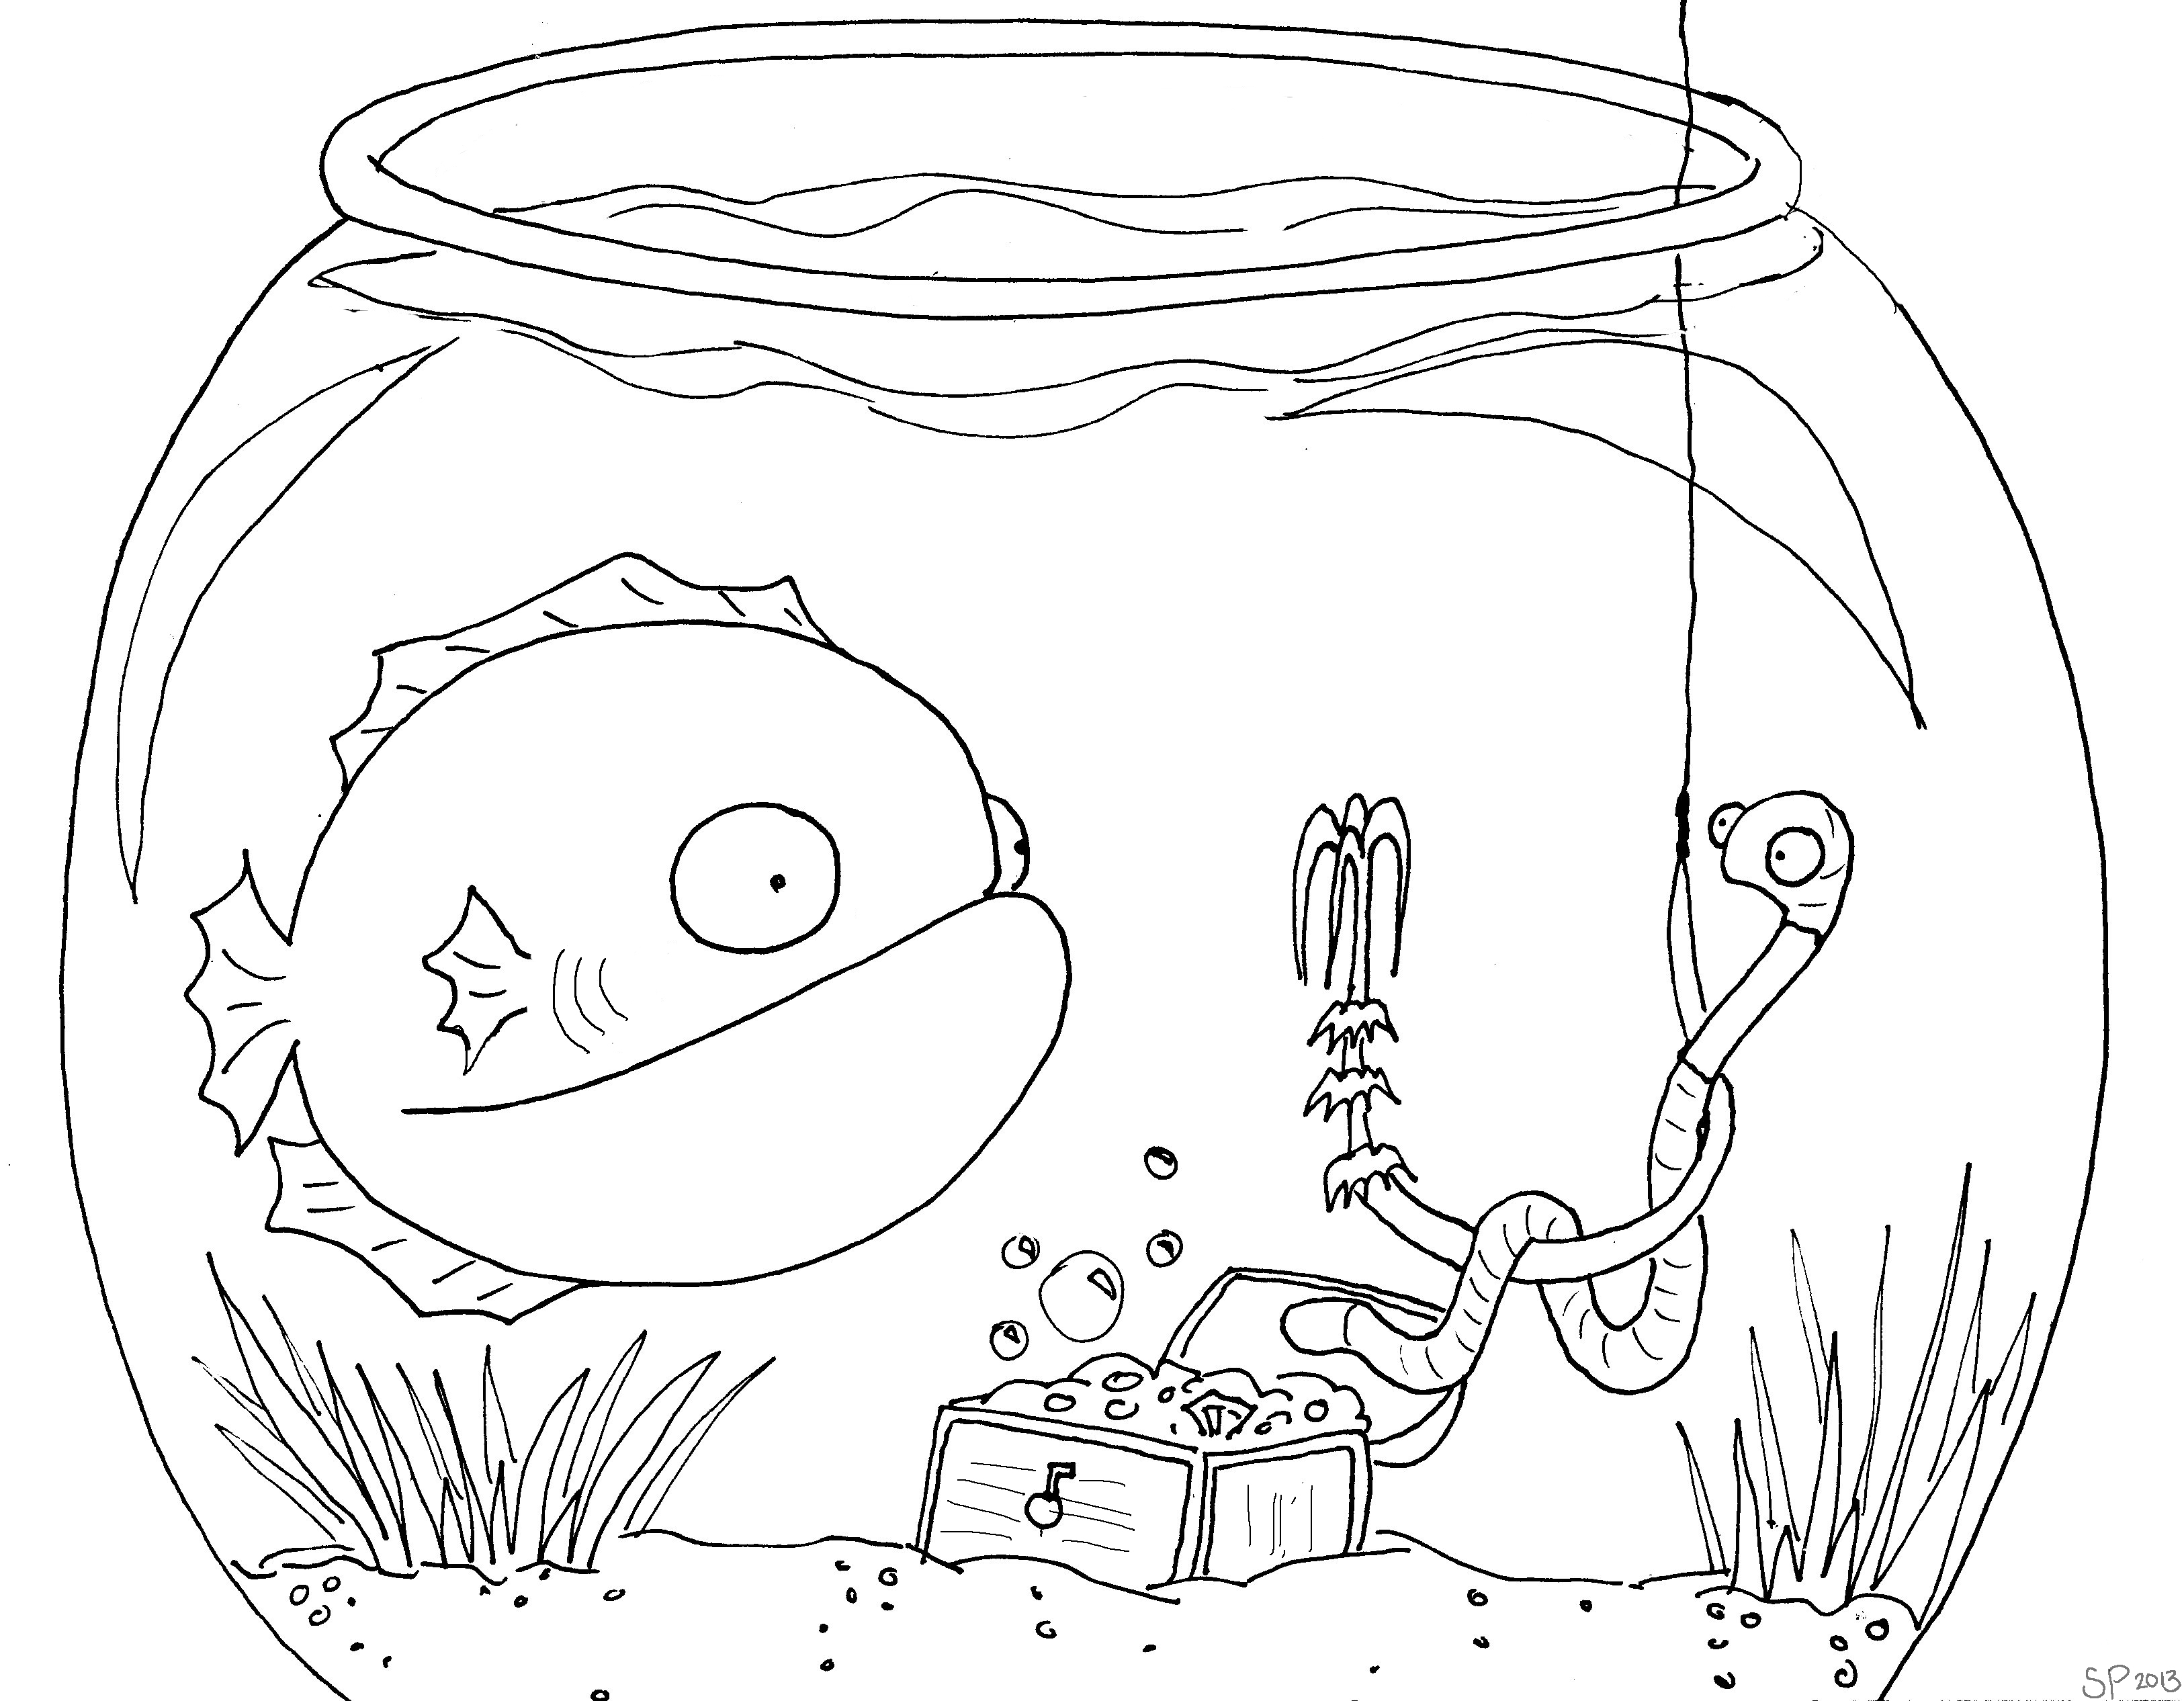 Under Sea Panel  25232 WM moreover Ocean Creatures Coloring Pages additionally dT6ao7MEc furthermore 9TRagppqc furthermore Underwater World coloring pages 012 likewise BzcXEx9TB also 6 32 also  likewise underwater fun  coloring page  by sabrane d561nk2 also  also coloring page undersea prev. on under sea coloring pages printable